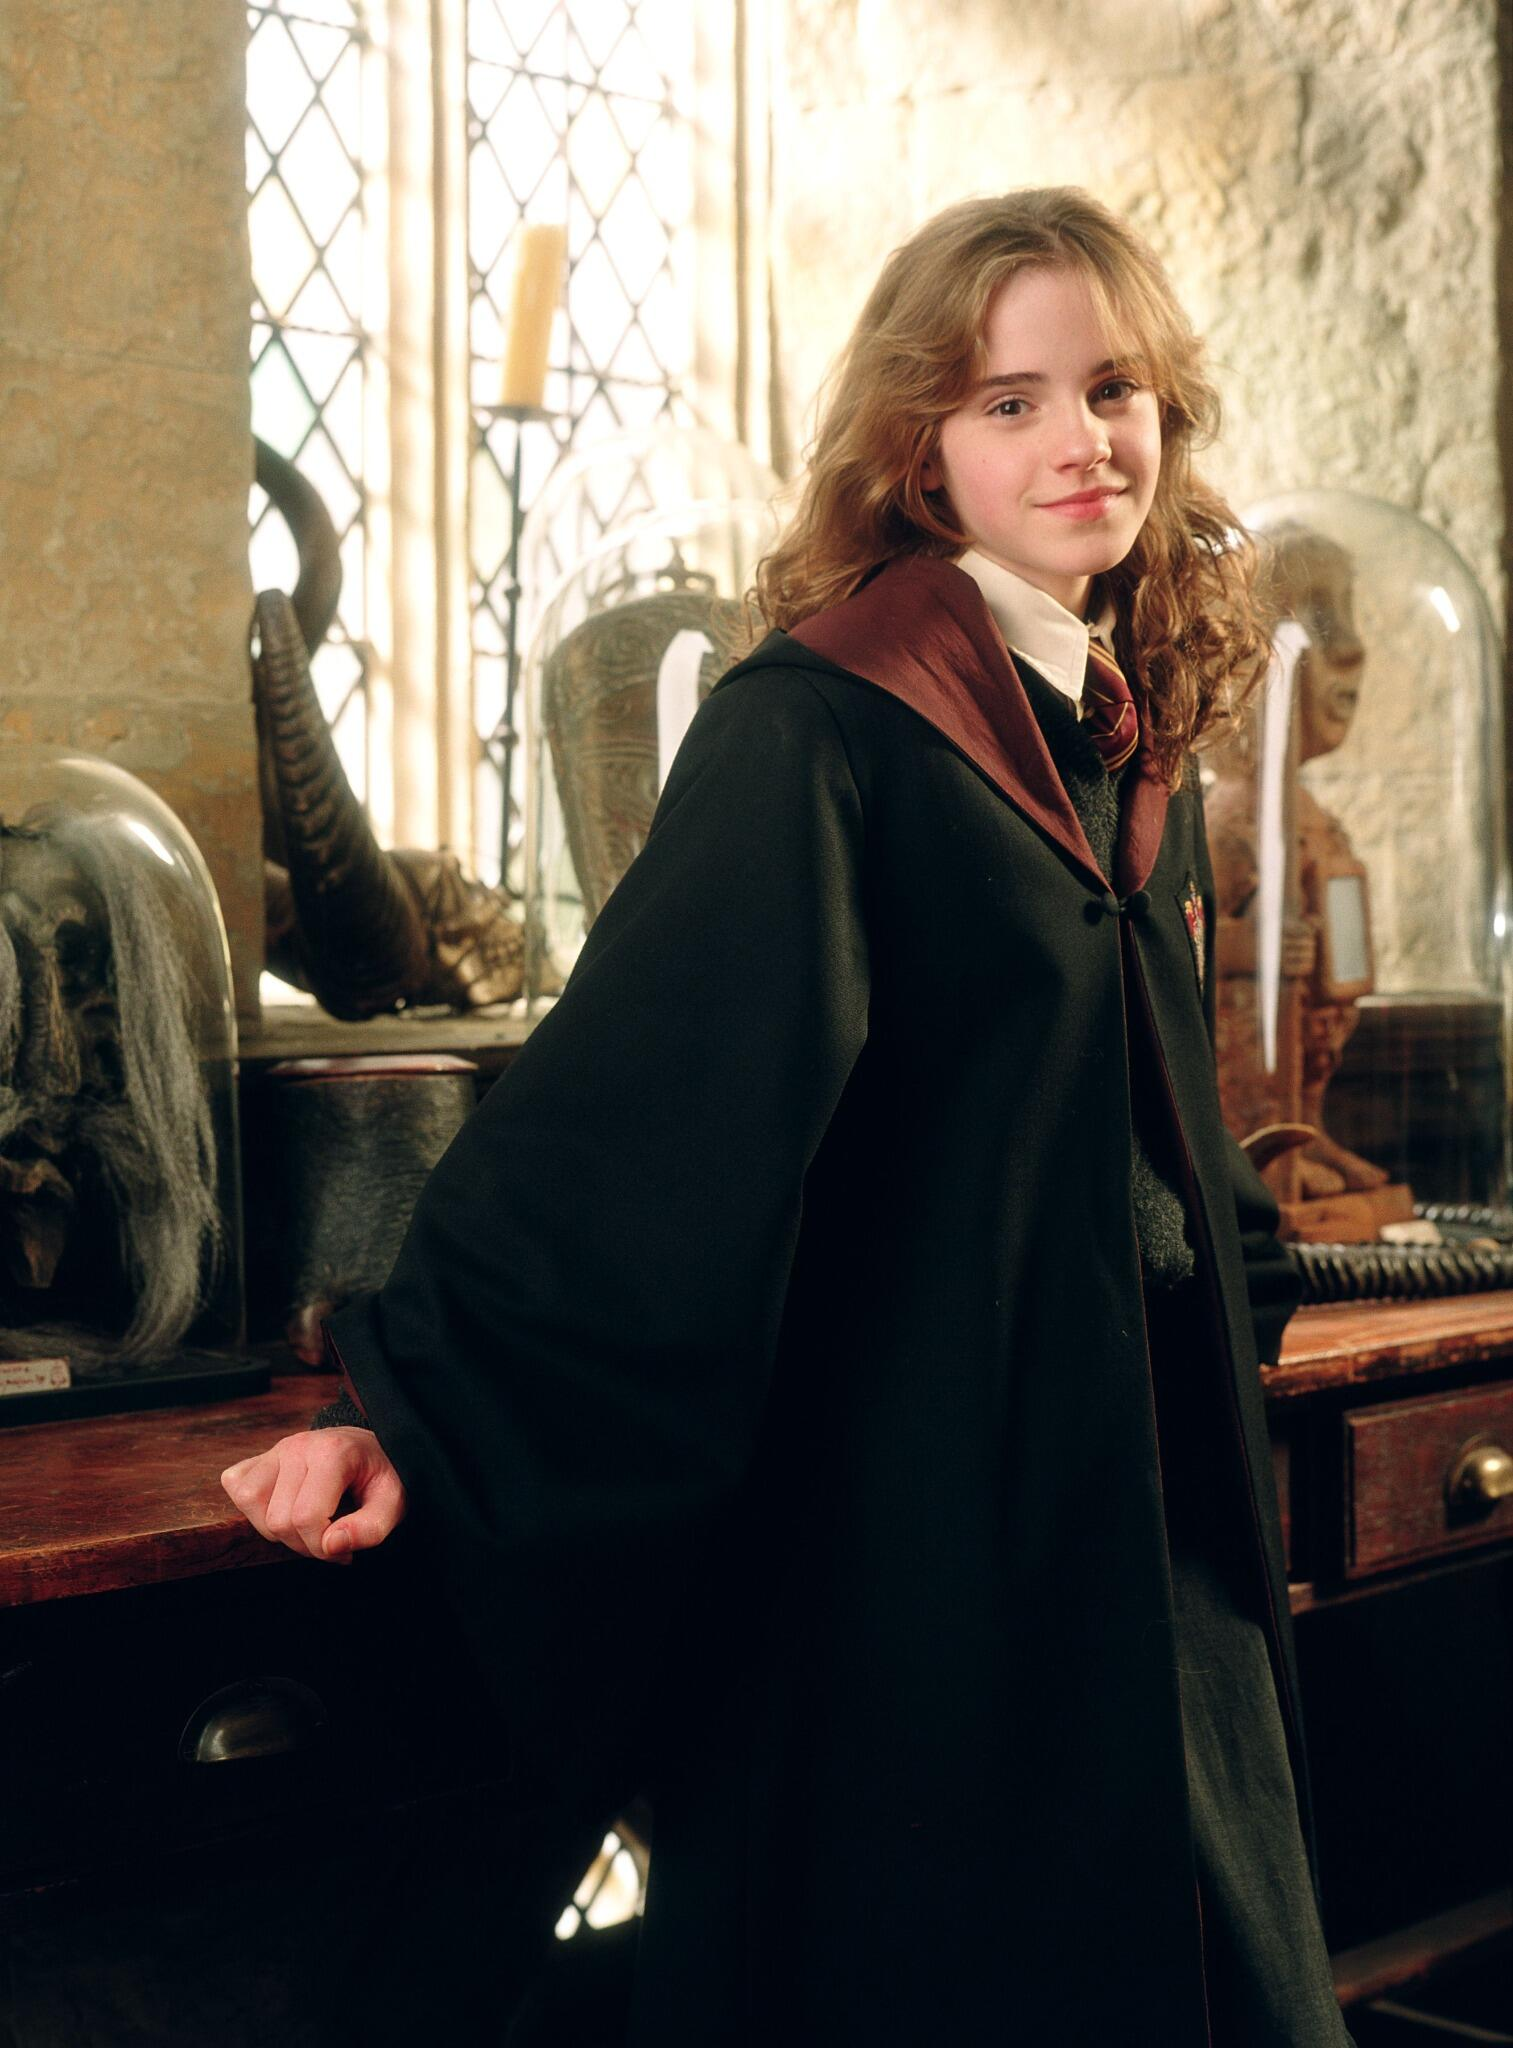 Happy birthday to clever and courageous Hermione! You are our perfect heroine! http://t.co/5DJFTJFF1z